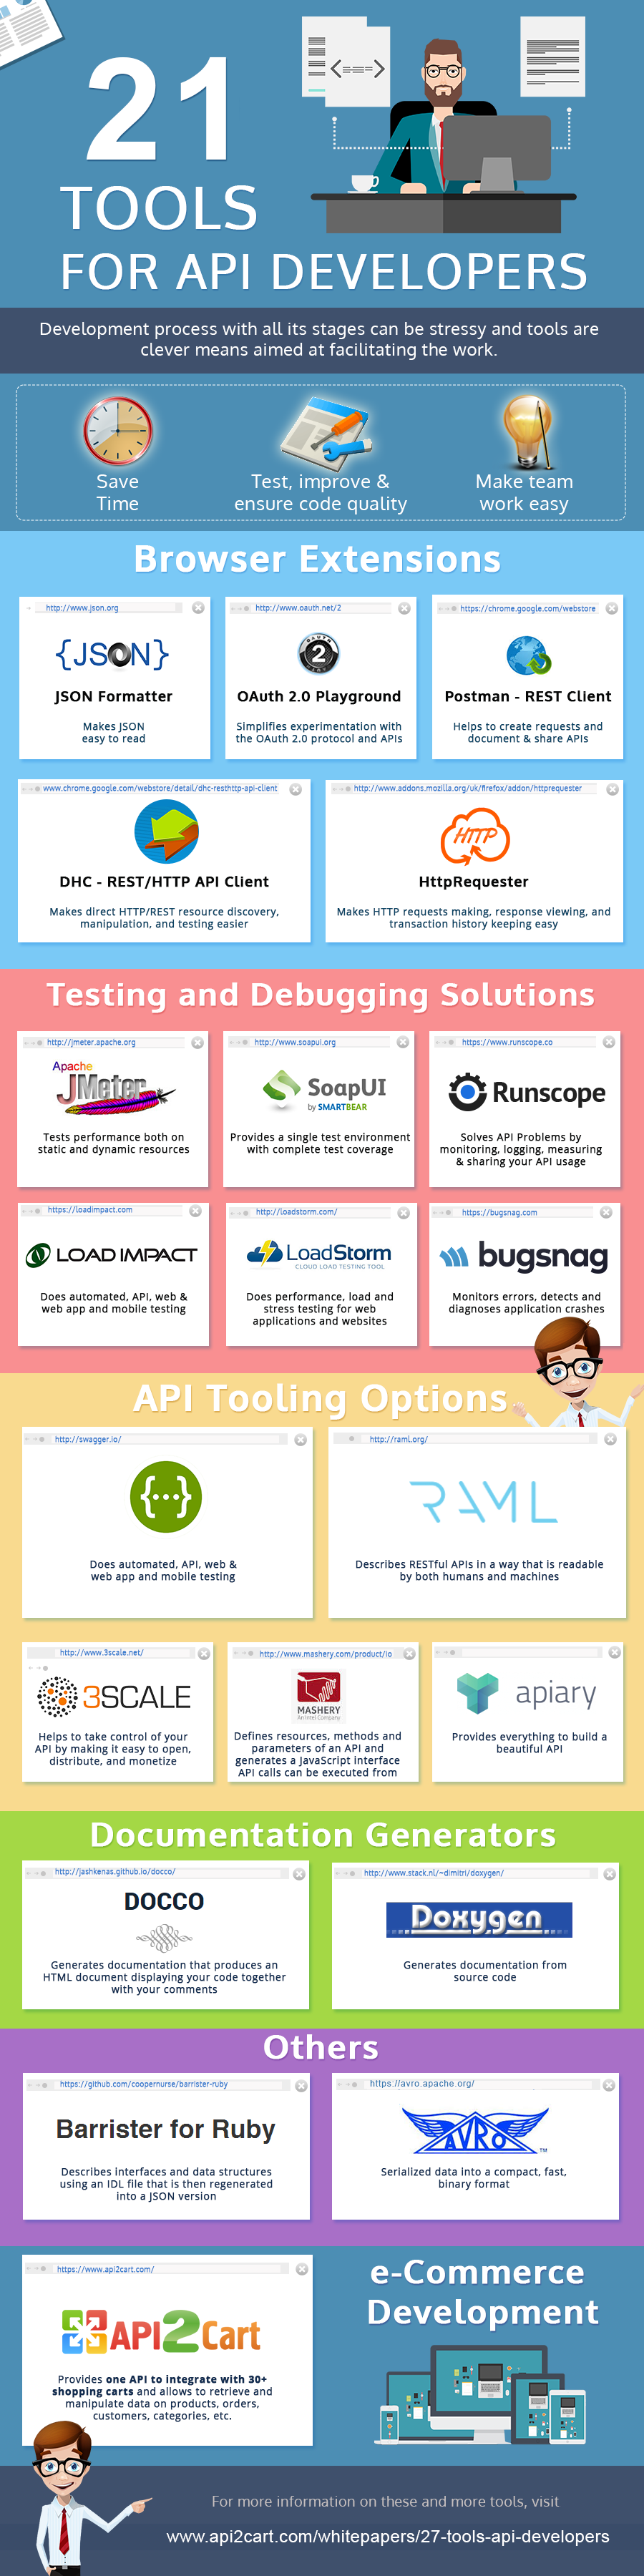 tools-for-api-developers